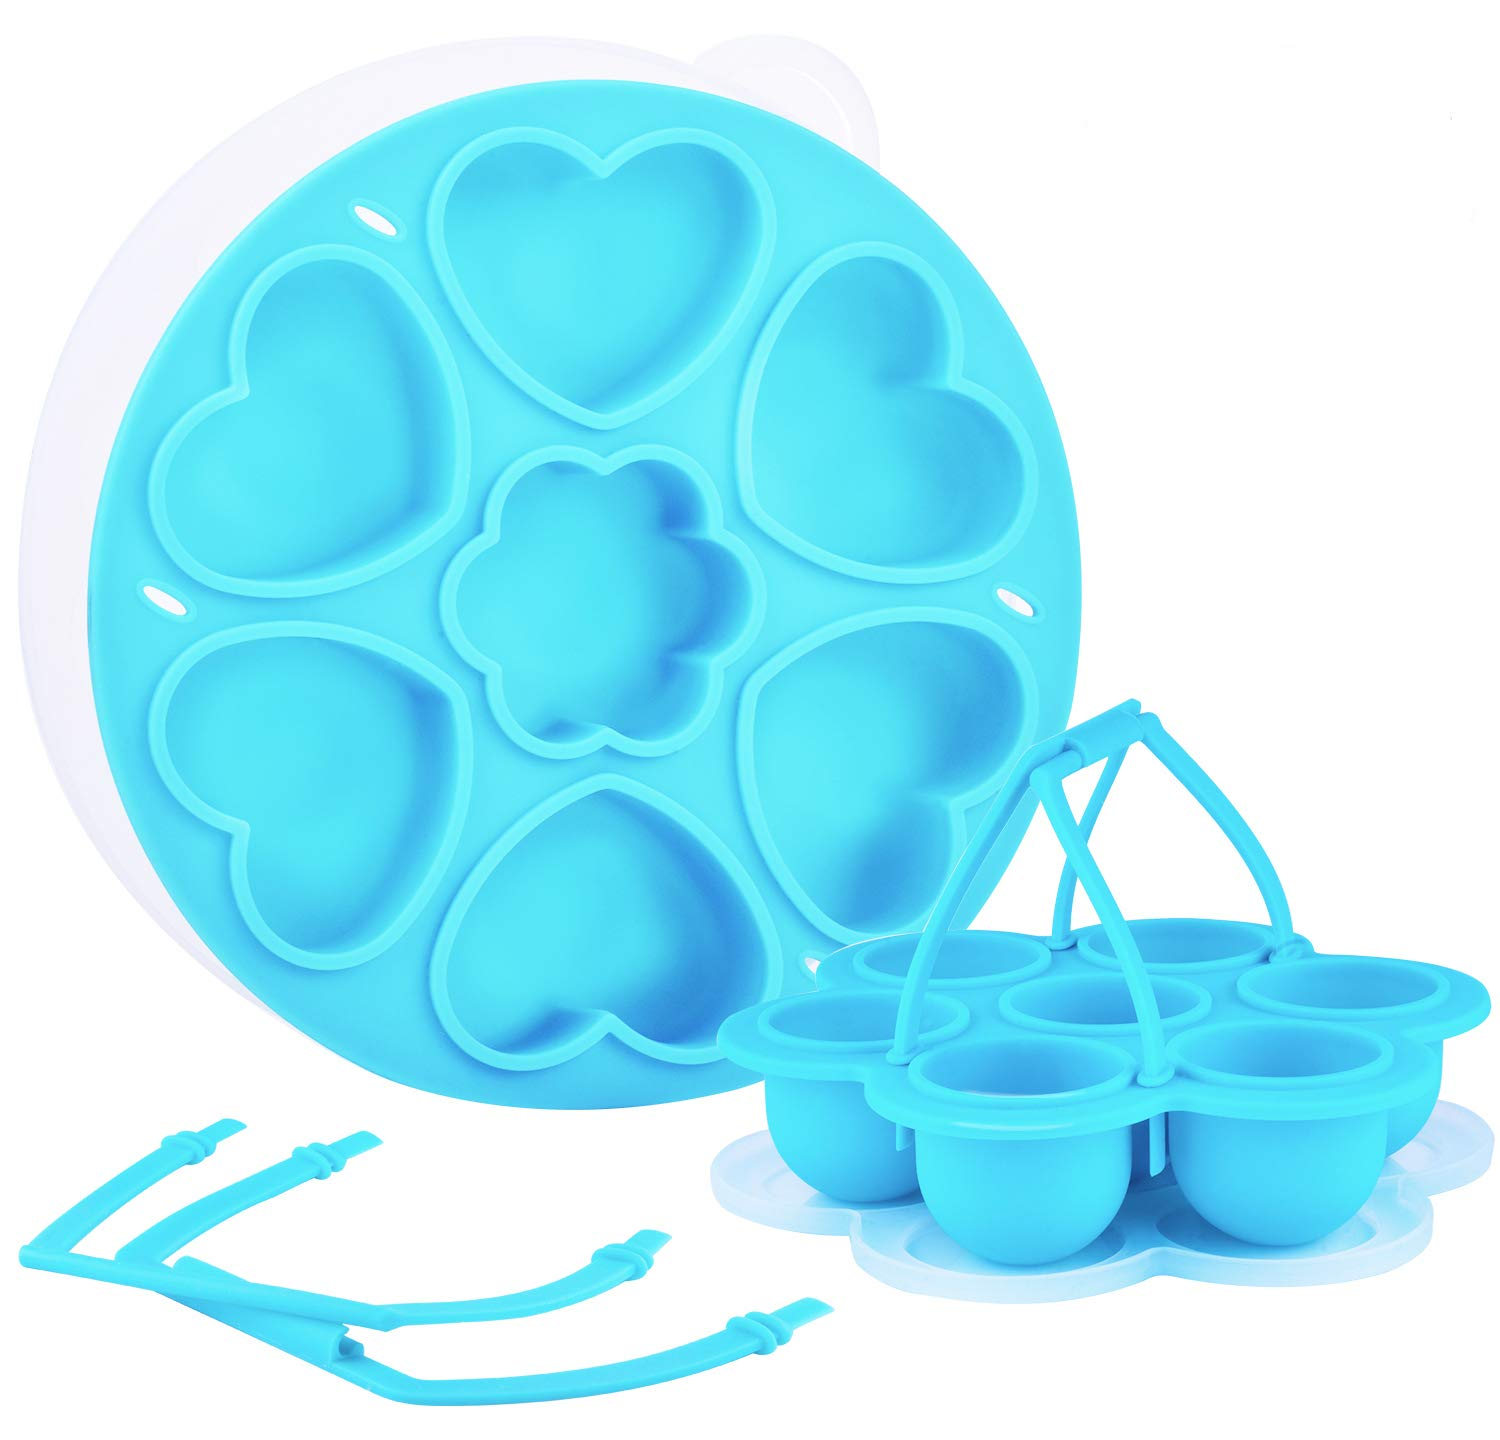 2 Pack Silicone Egg Bites Mold for Instant Pot Accessories - Round & Heart Shape, FDA Aprroved - Egg Cooker & Egg Poacher for 5, 6, 8 qt Instant Pot Pressure Cooker/ Microwave (Blue)